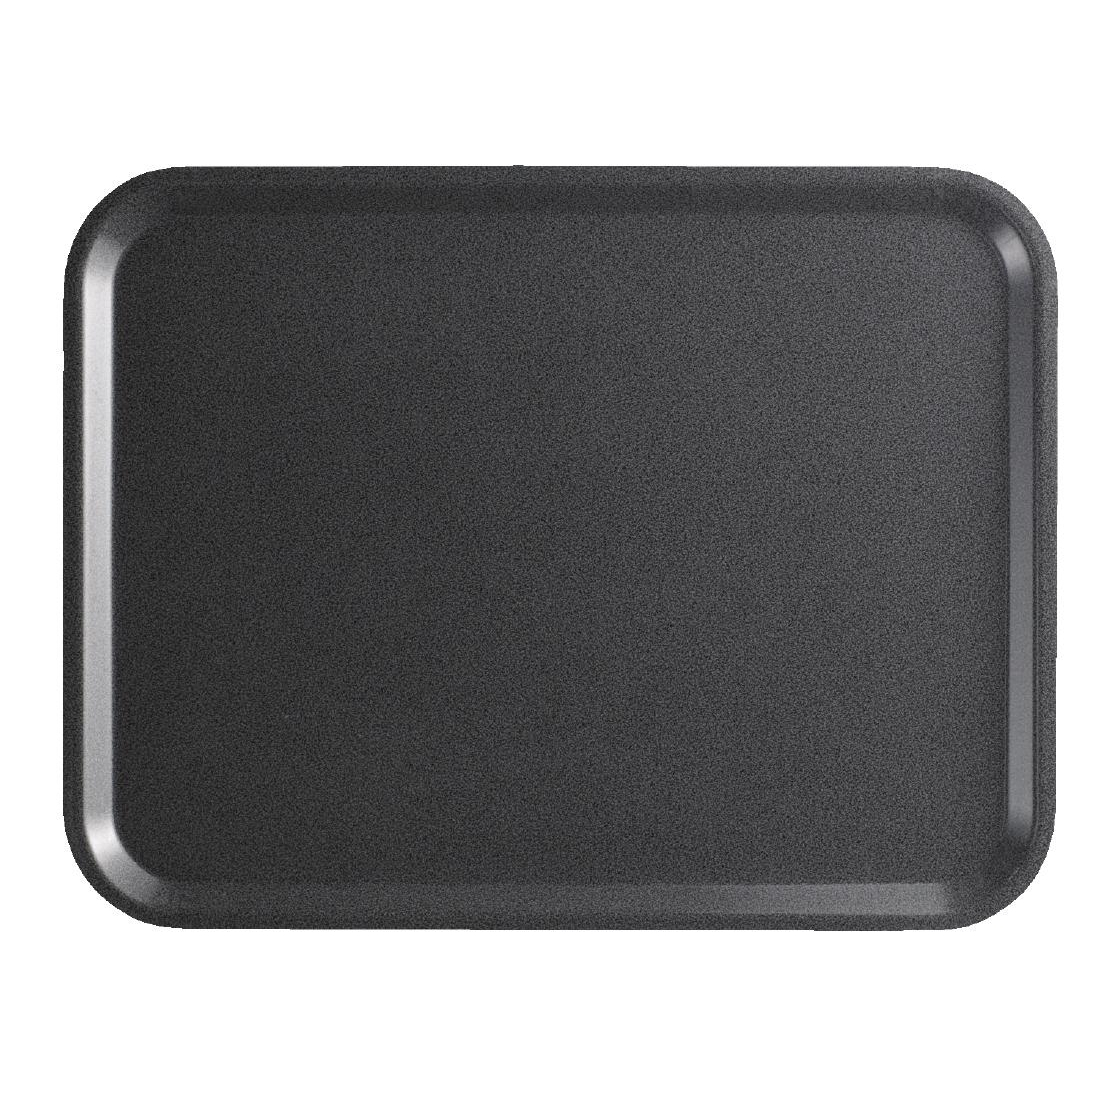 Cambro Cafeteria Tray 13 x 17 in Granite